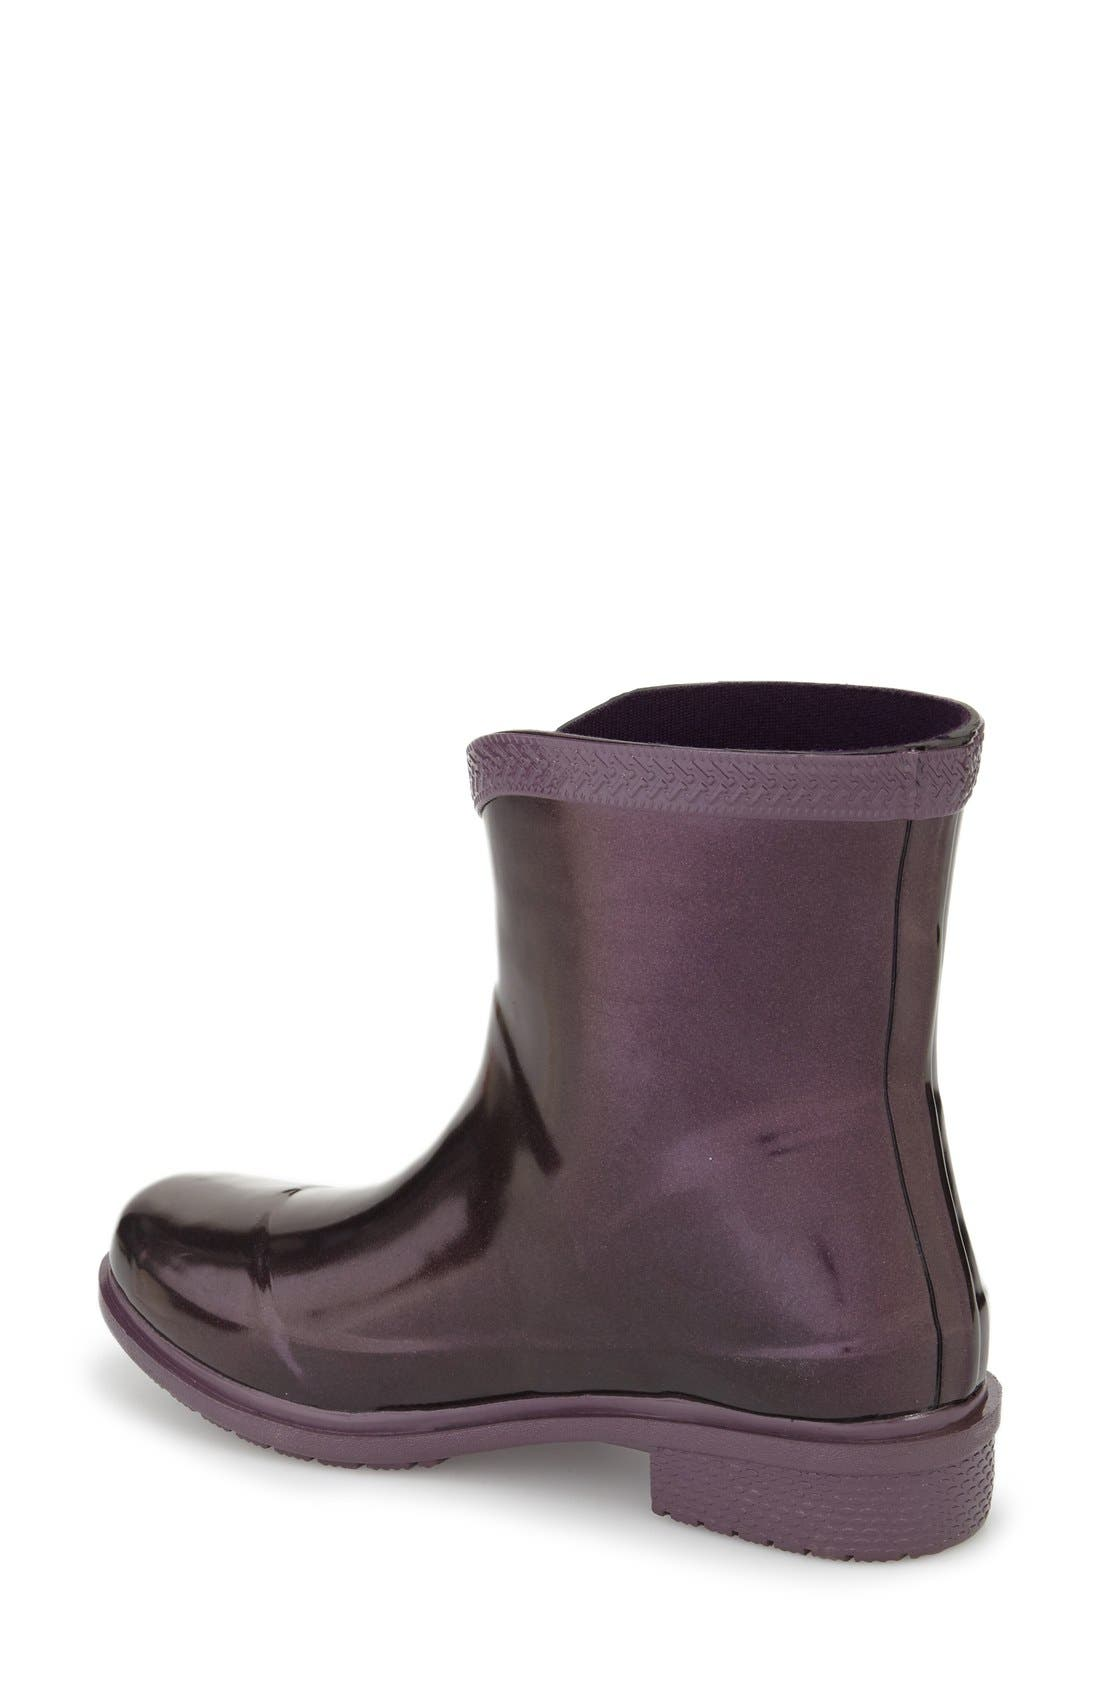 Alternate Image 2  - Havaianas 'Galochas Low Metallic' Waterproof Rain Boot (Women)